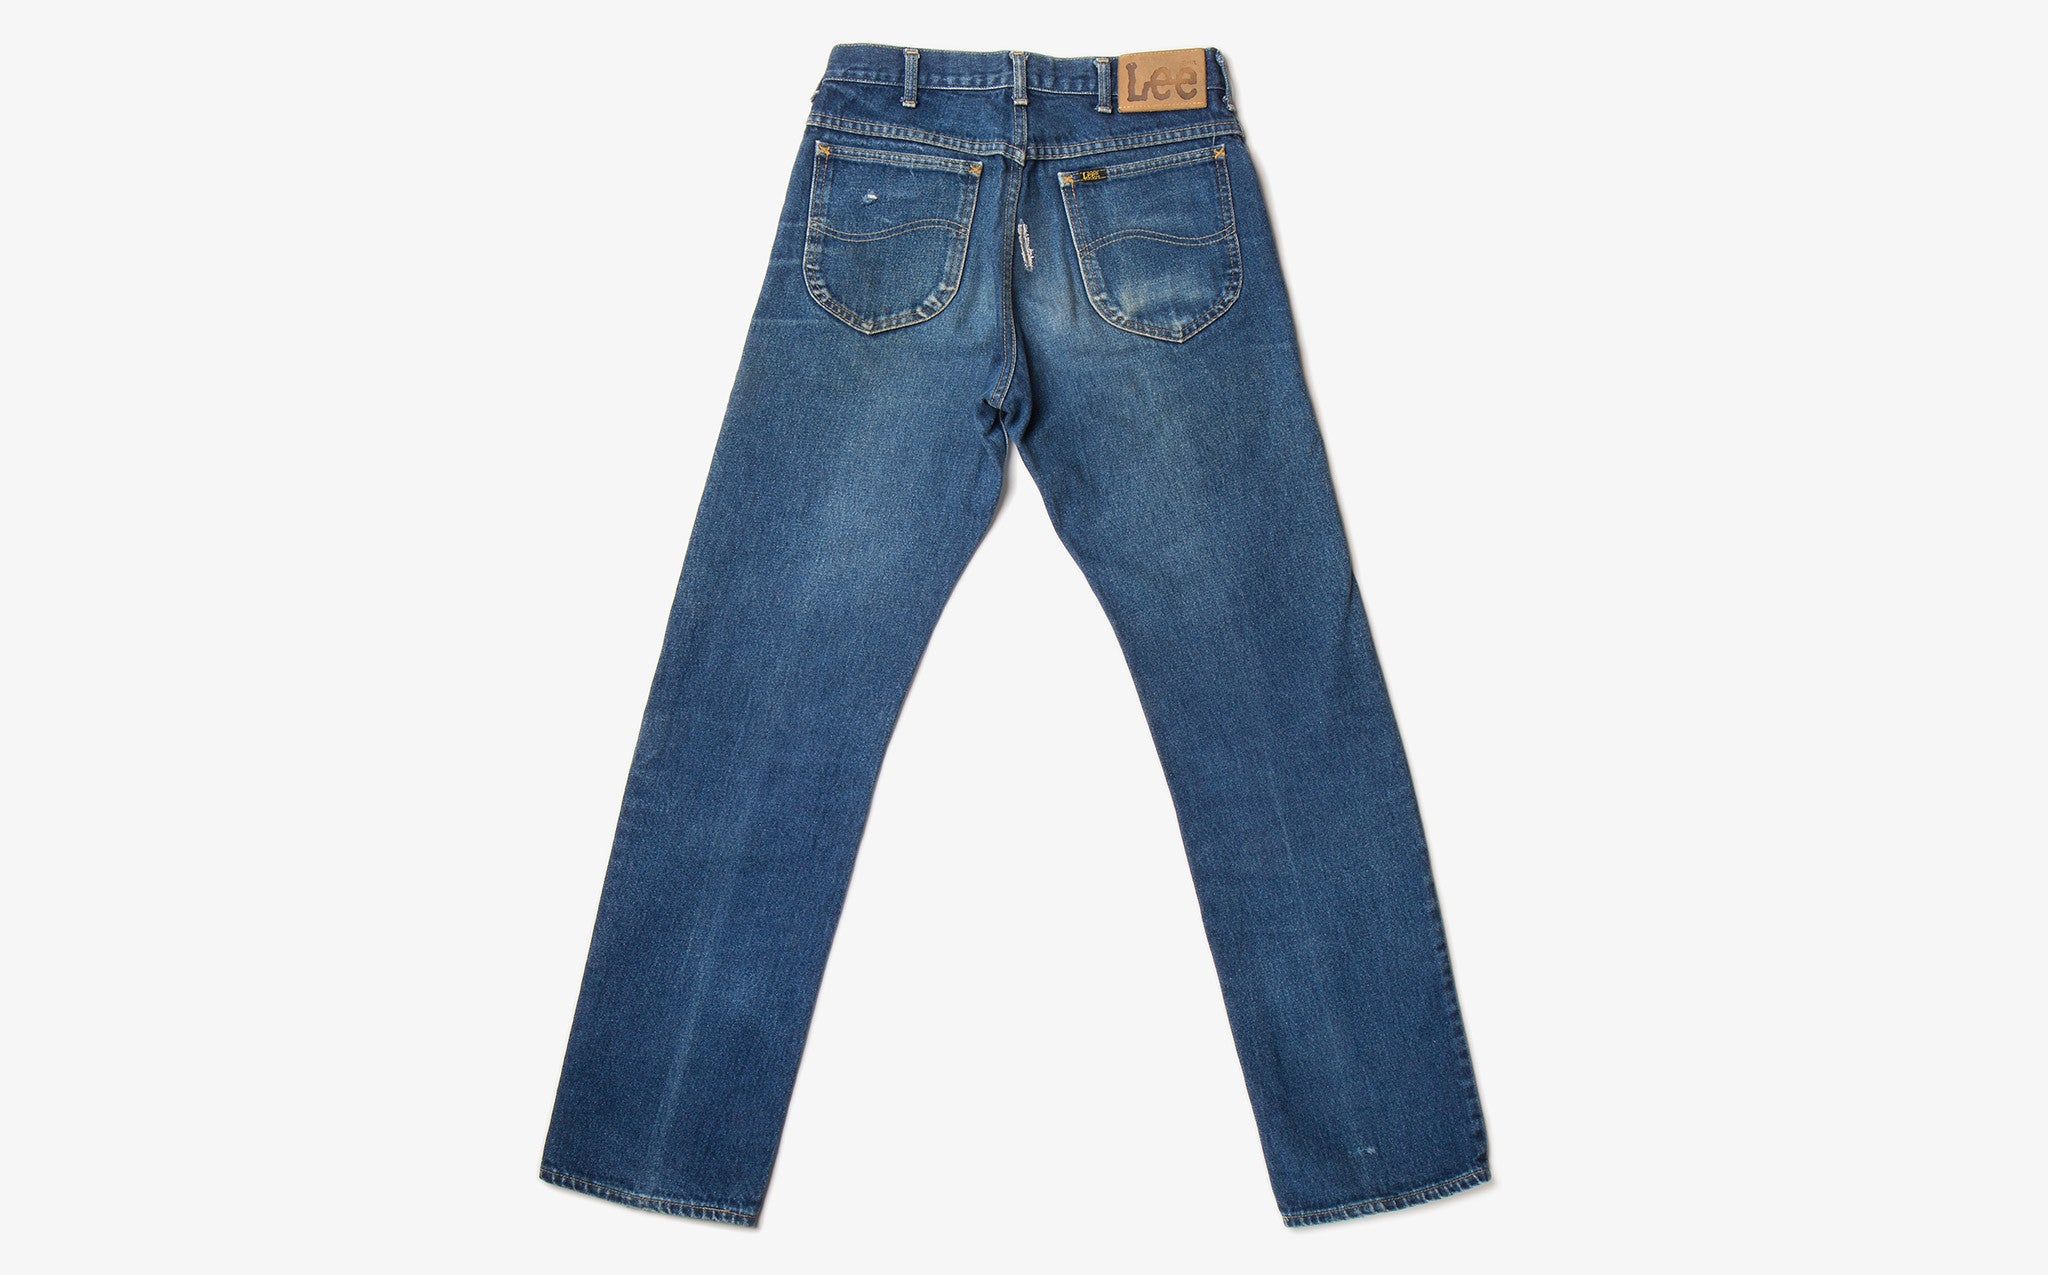 Lee Denim – Size 27/28